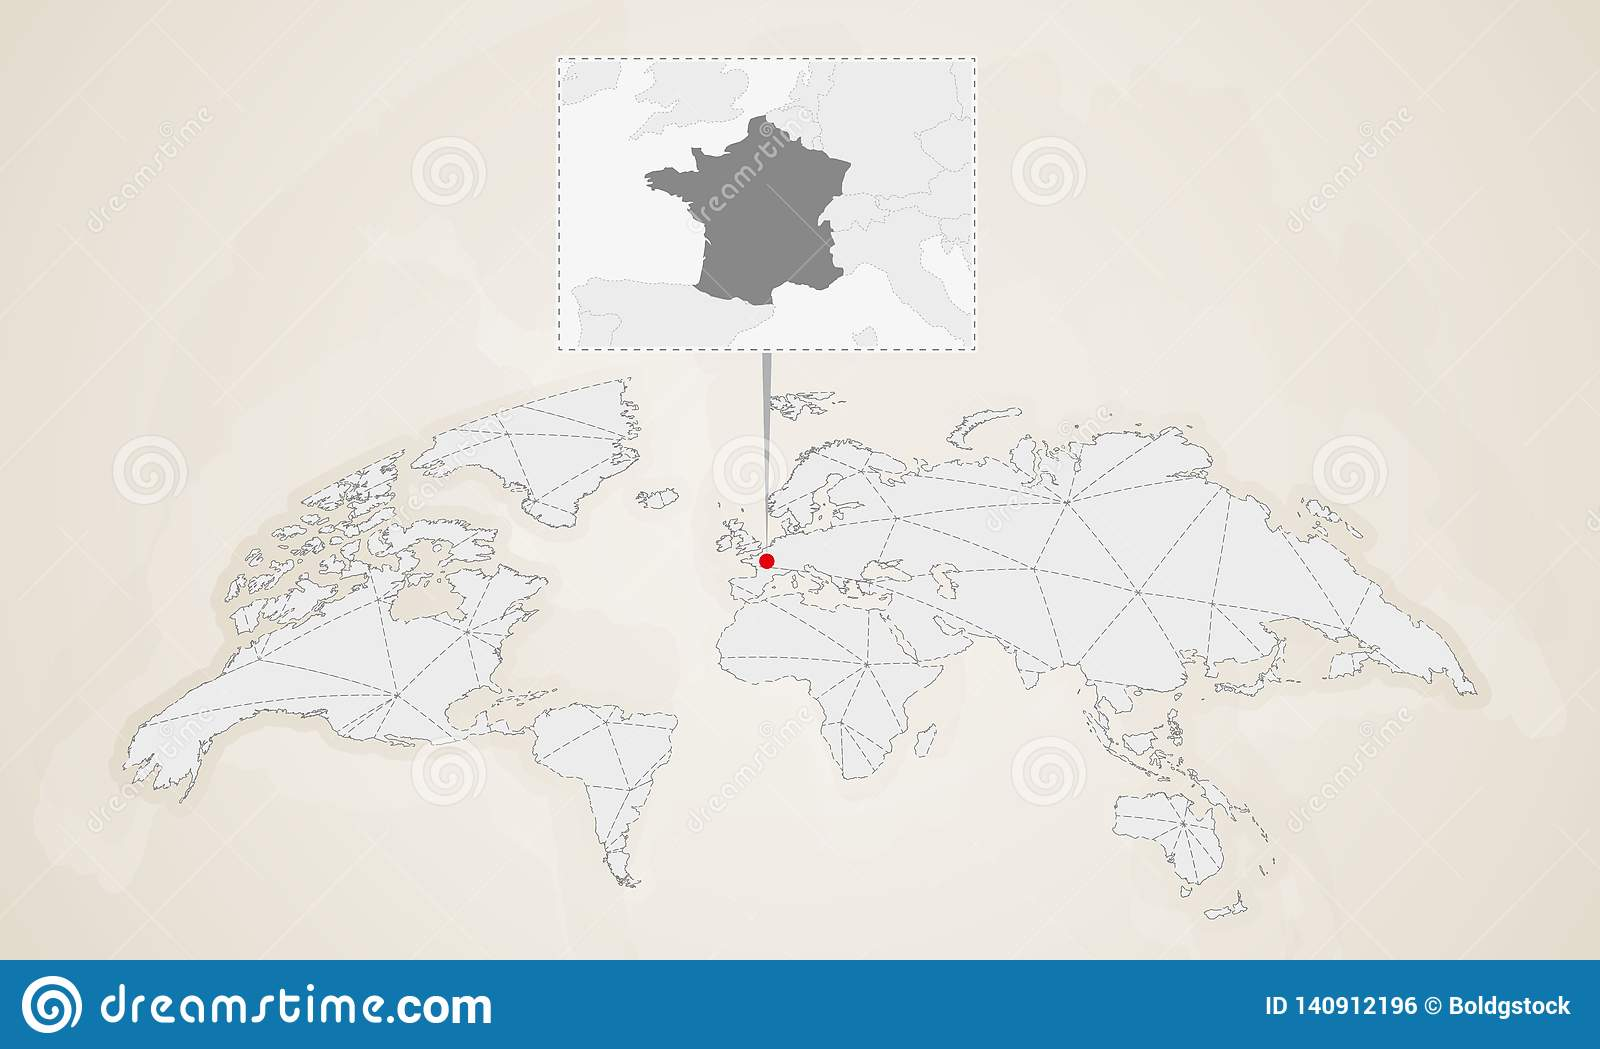 Country Map Of France.Map Of France With Neighbor Countries Pinned On World Map Stock